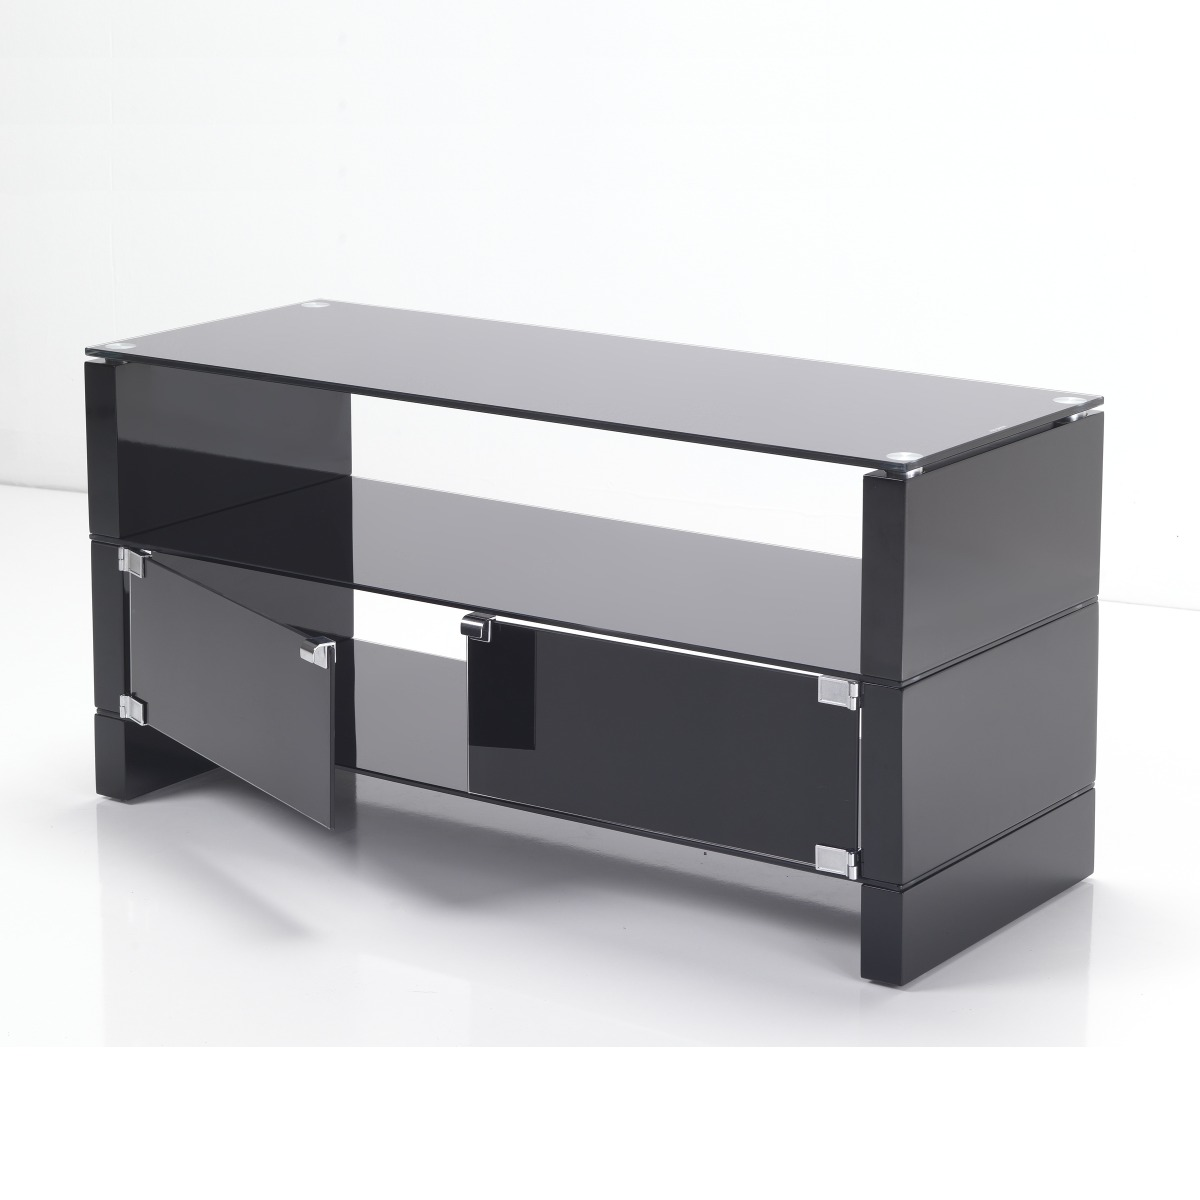 Black Glass Flat Screen Tv Stand Cabinets 32 40 Inch Ebay